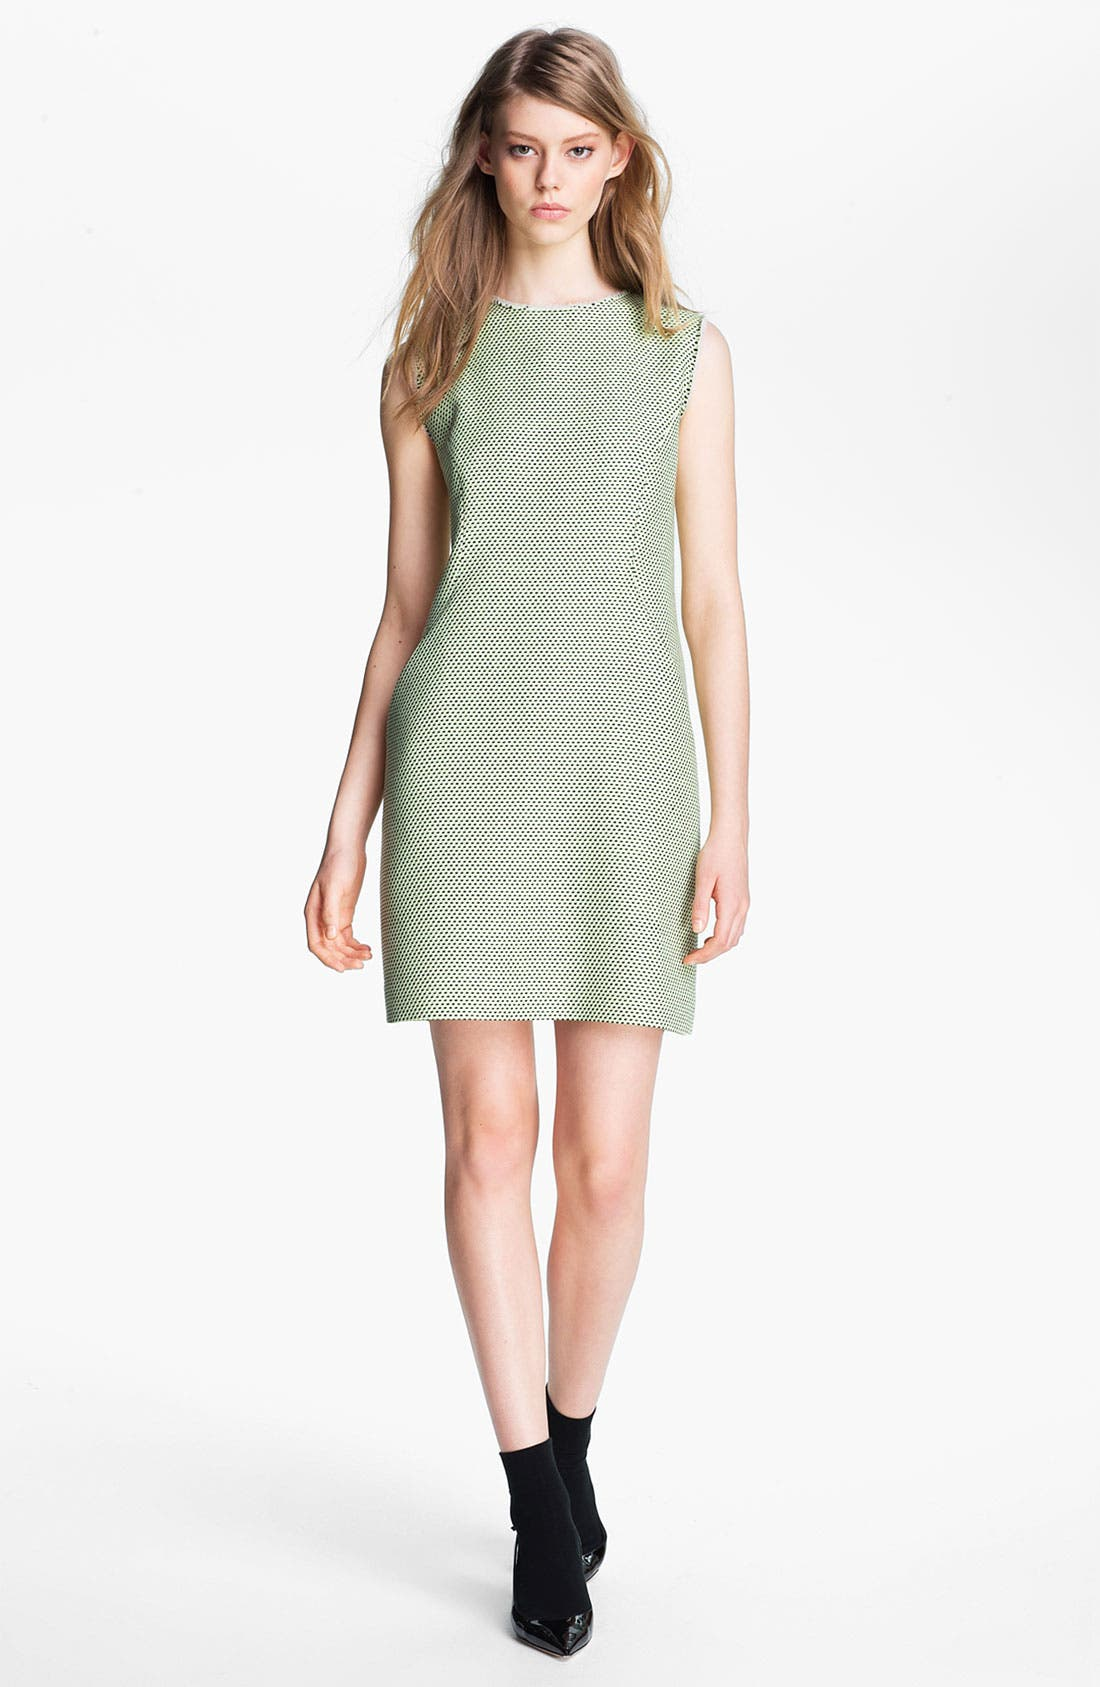 Alternate Image 1 Selected - Miss Wu Modern Weave Shift Dress (Nordstrom Exclusive)